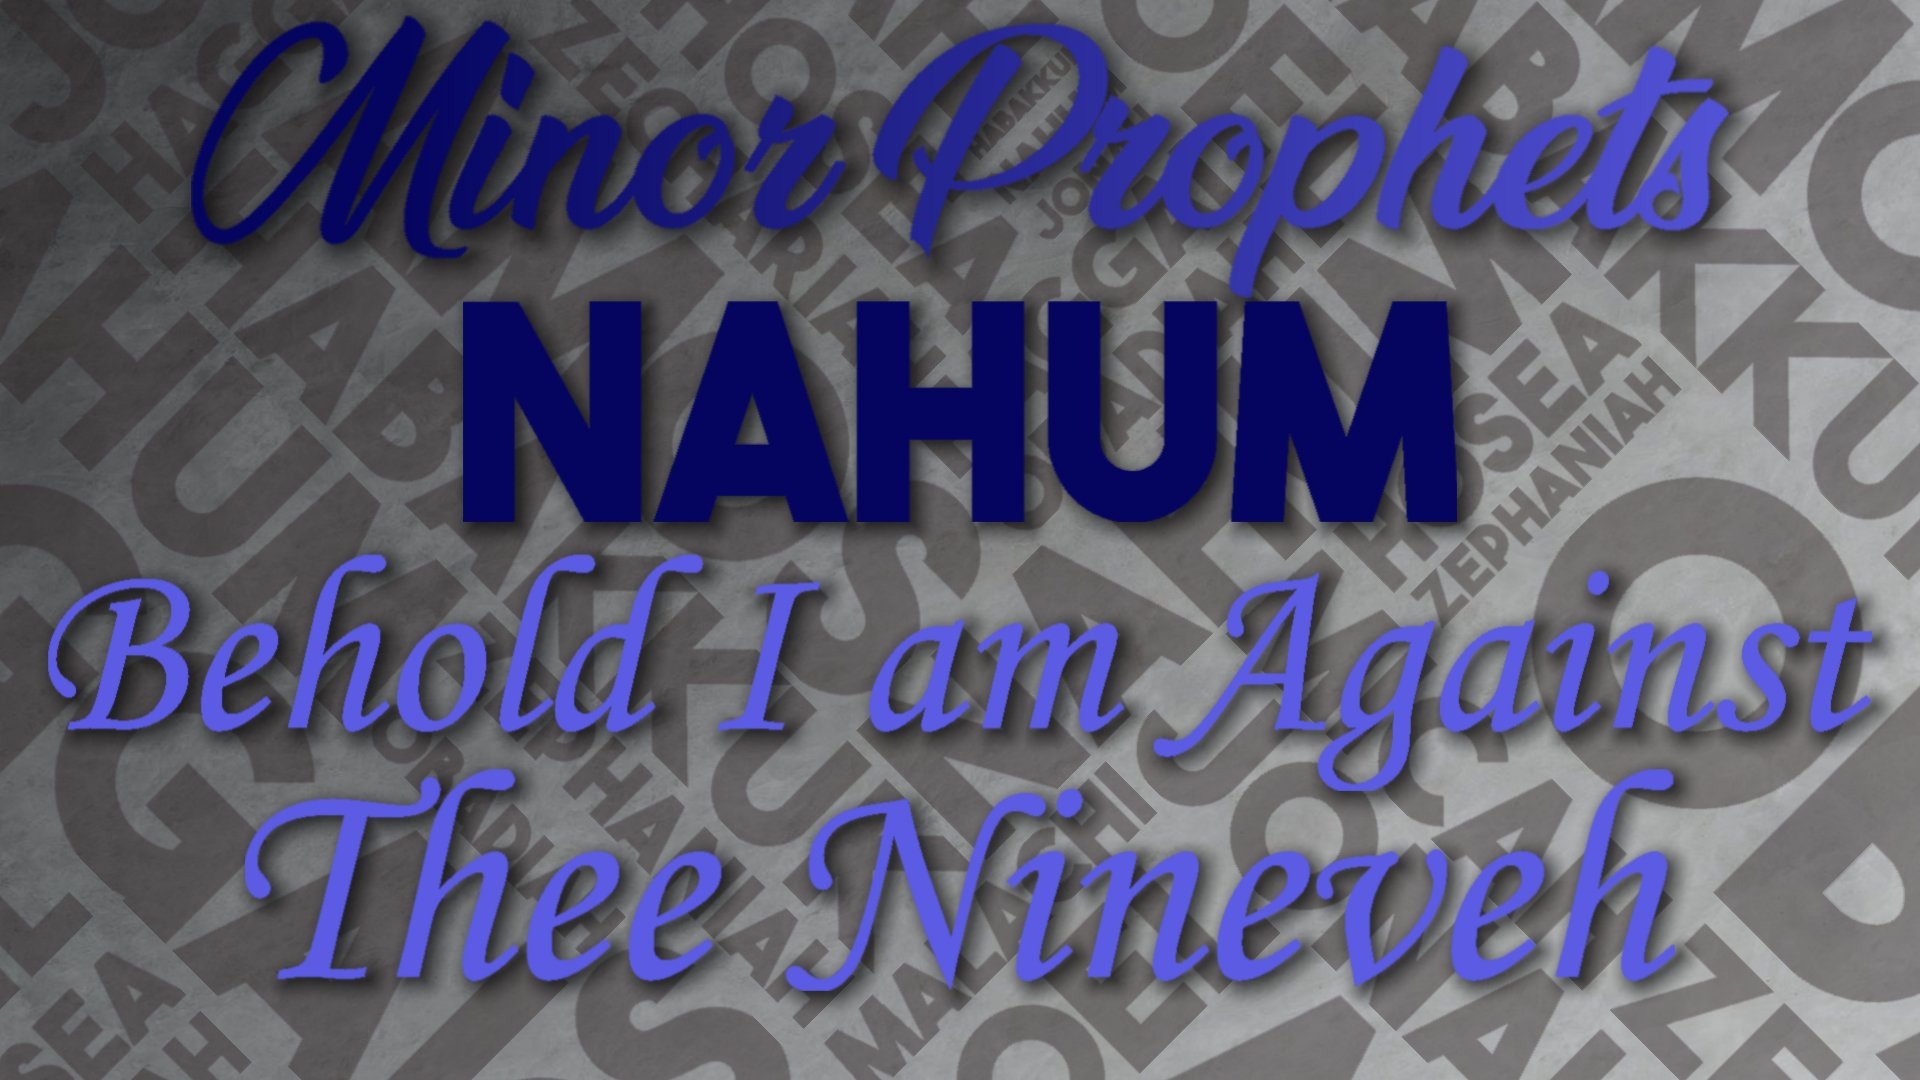 20 Behold I am Against Thee, Nineveh